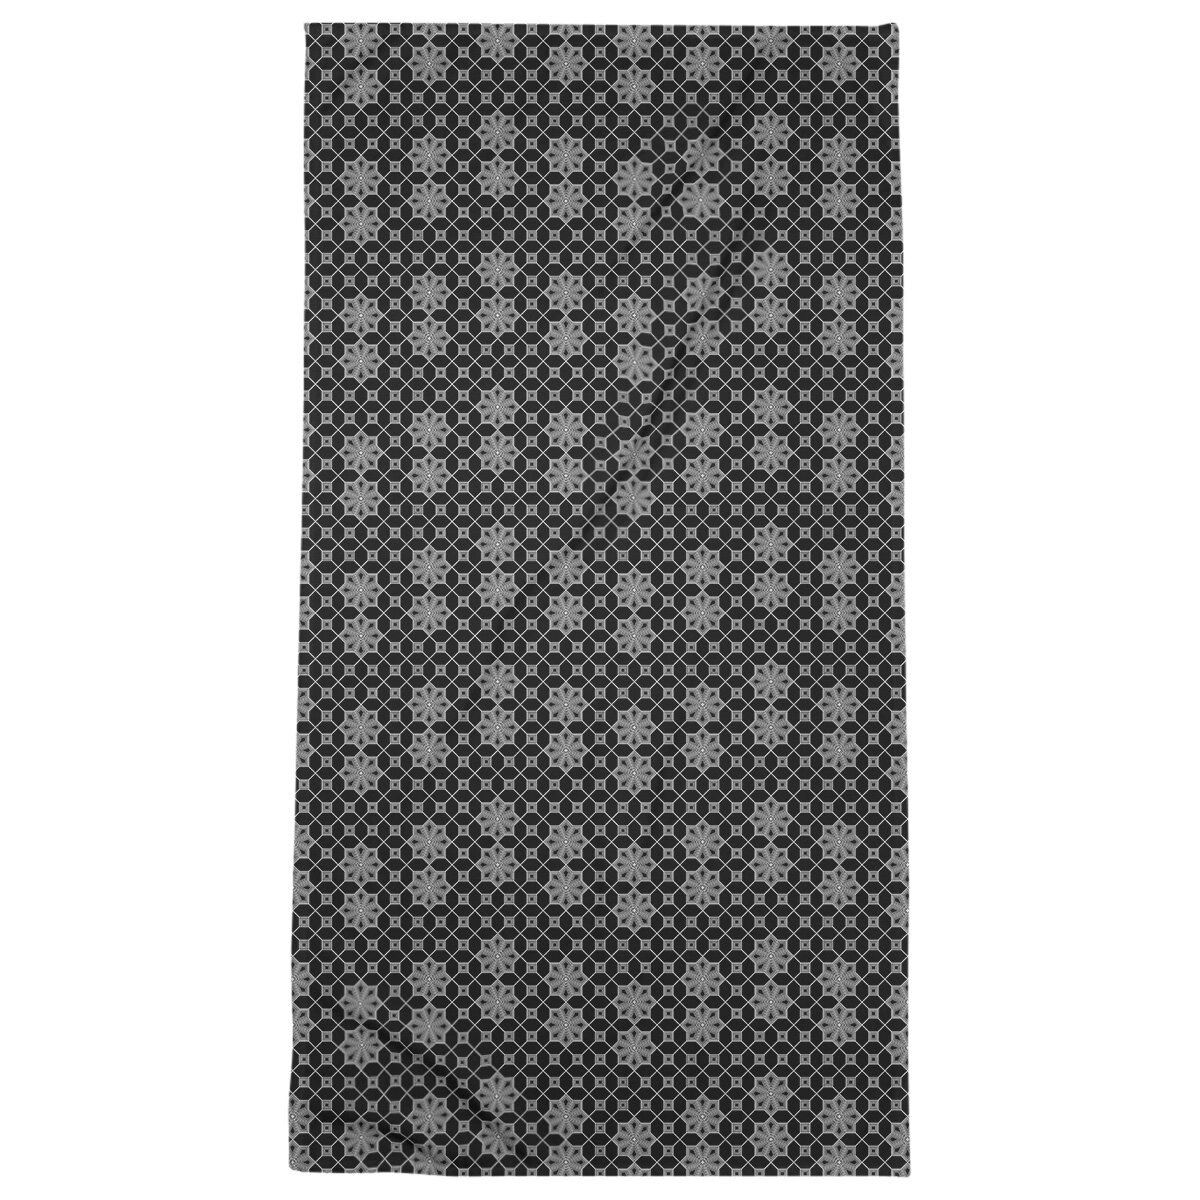 East Urban Home Classic Lattice Beach Towel Wayfair